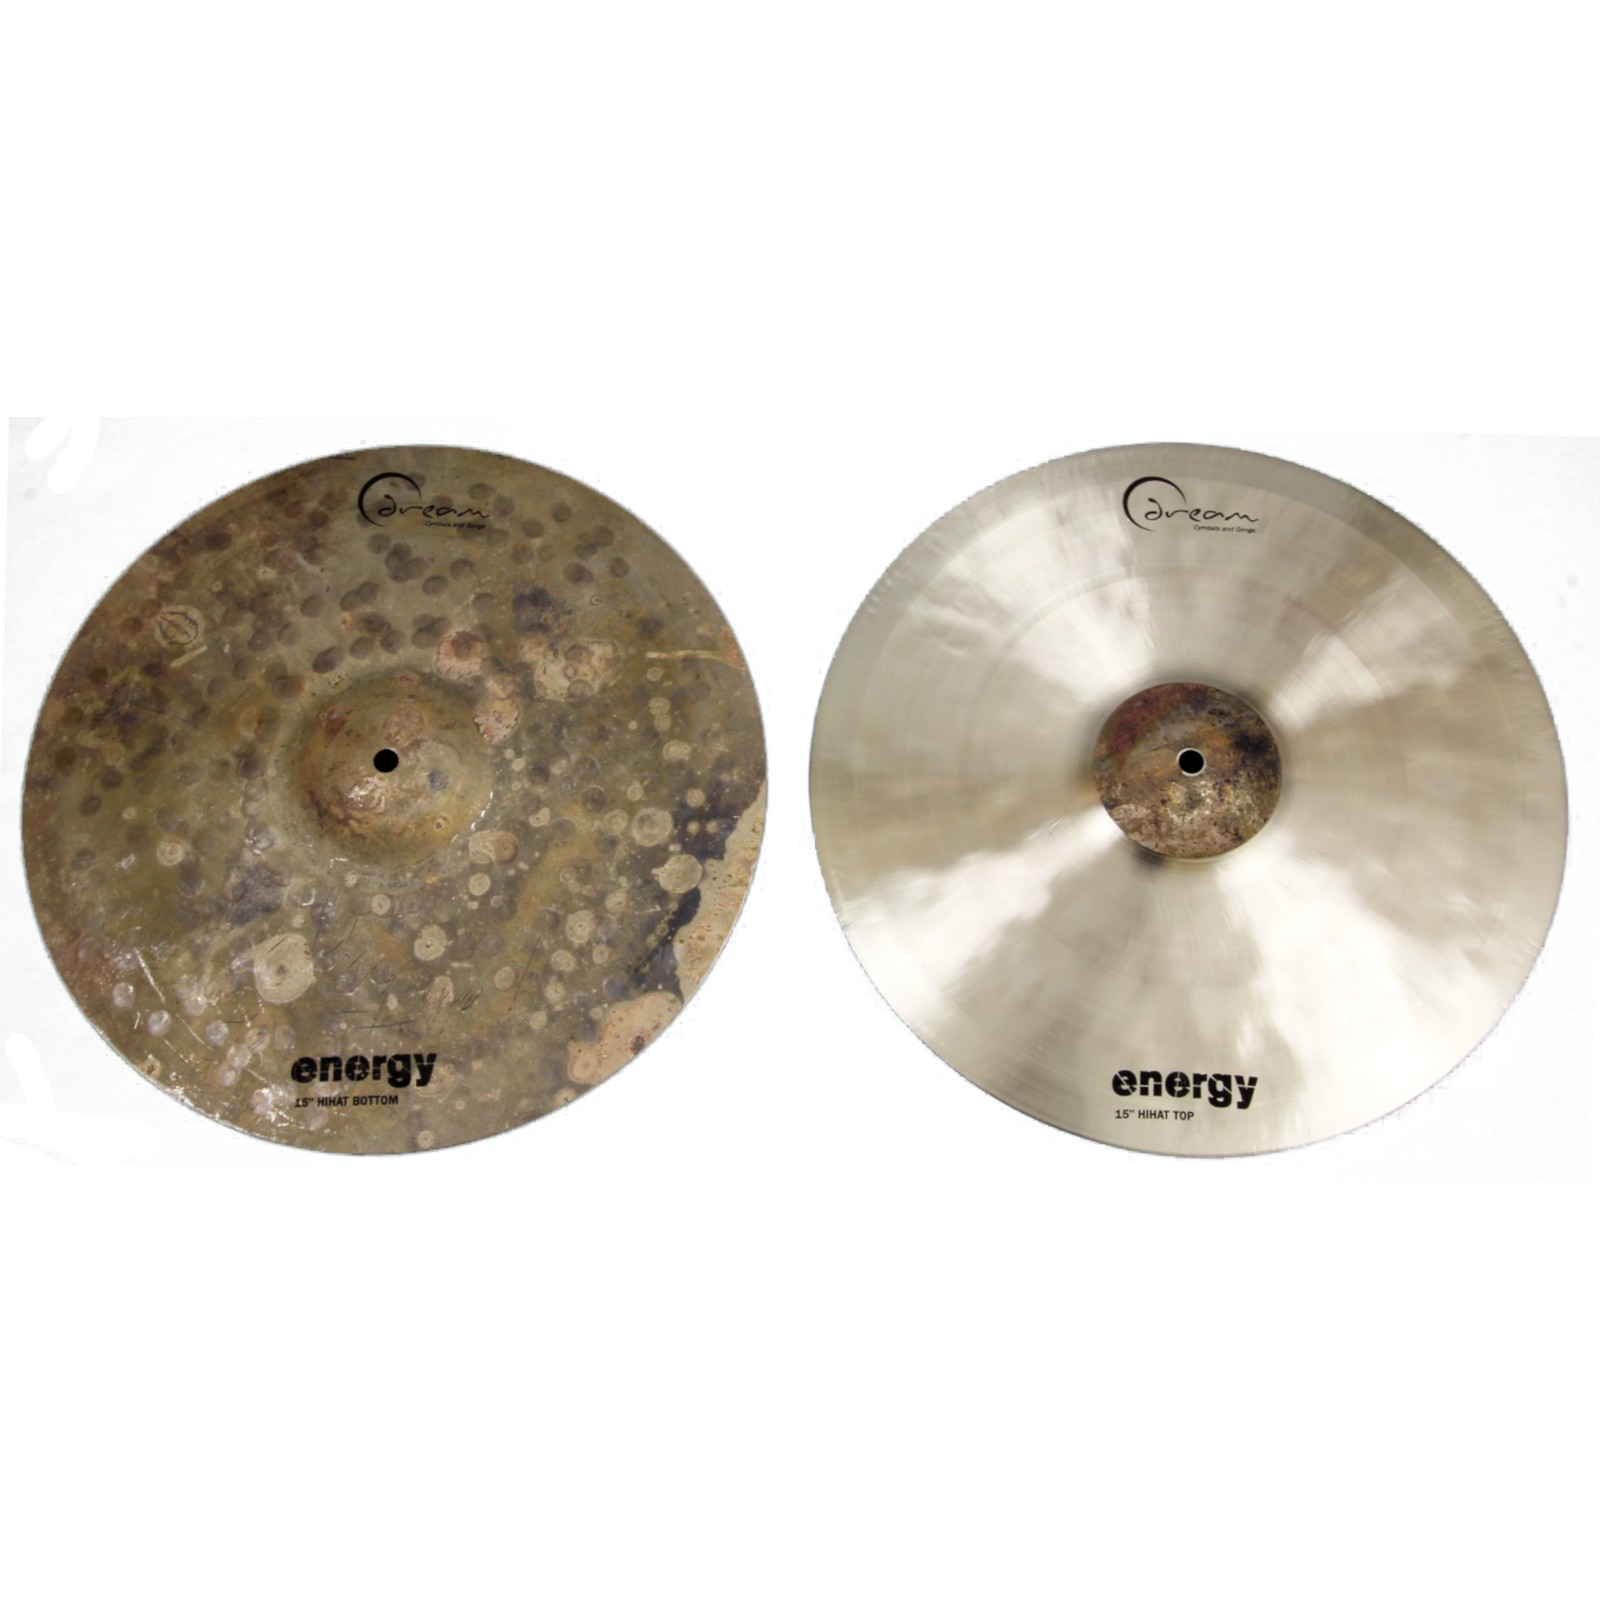 "Dream Cymbals Energy Series 15"" Hihat"